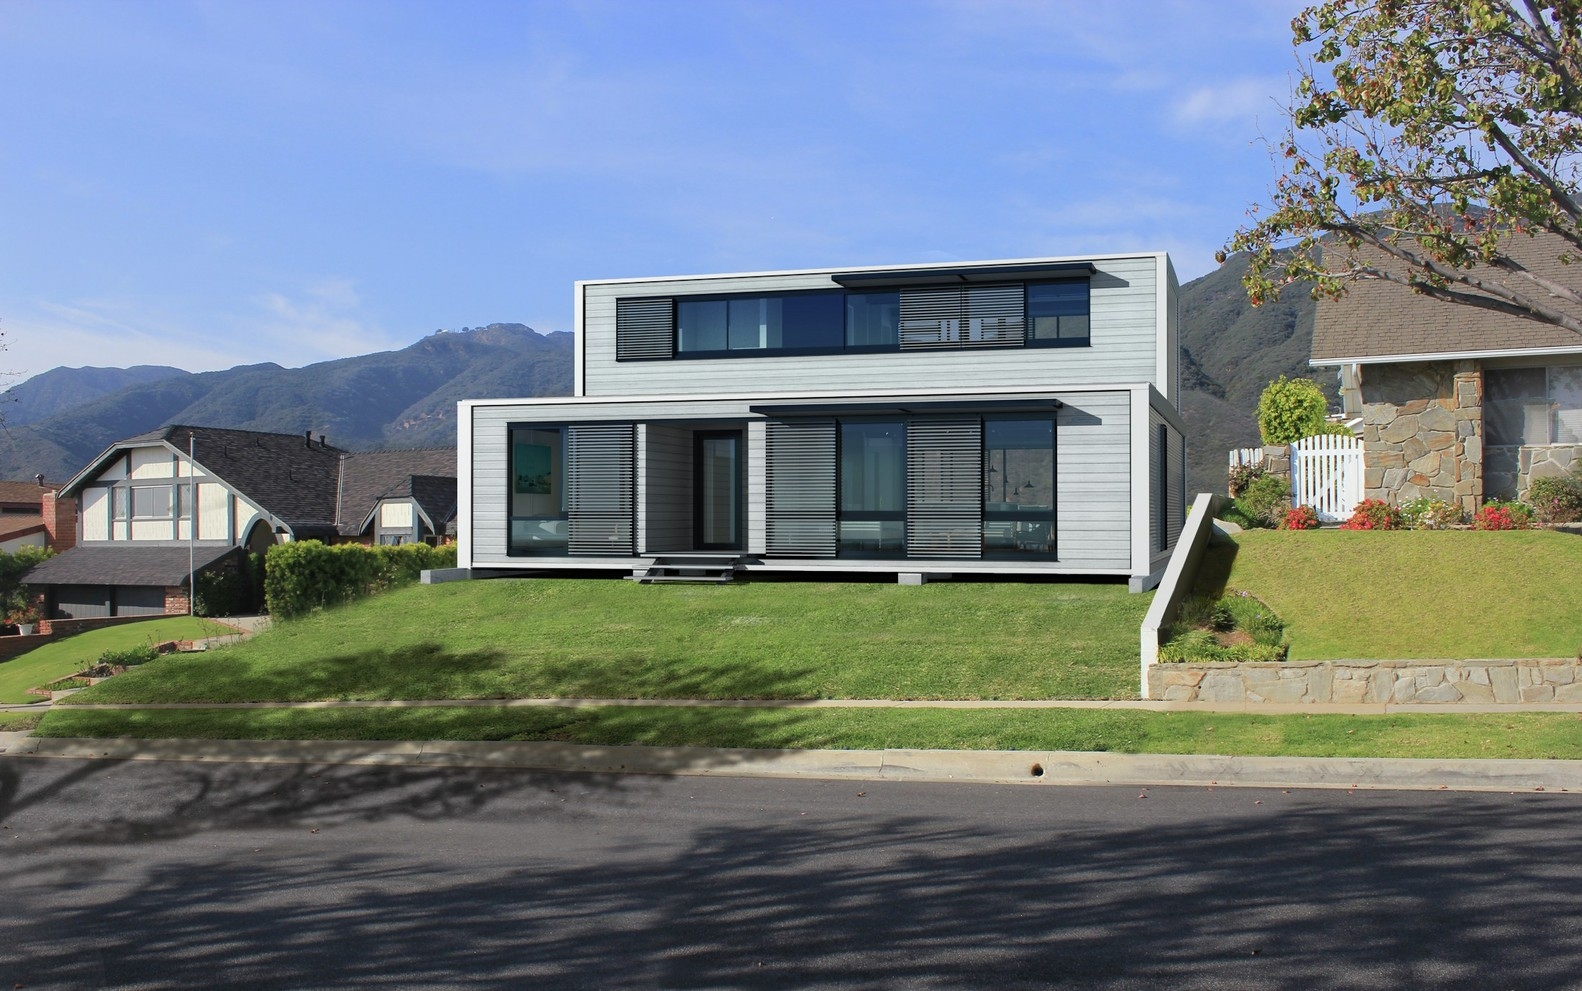 Gallery of onnect:Homes Offers ffordable, Modern, Sustainable ... - ^